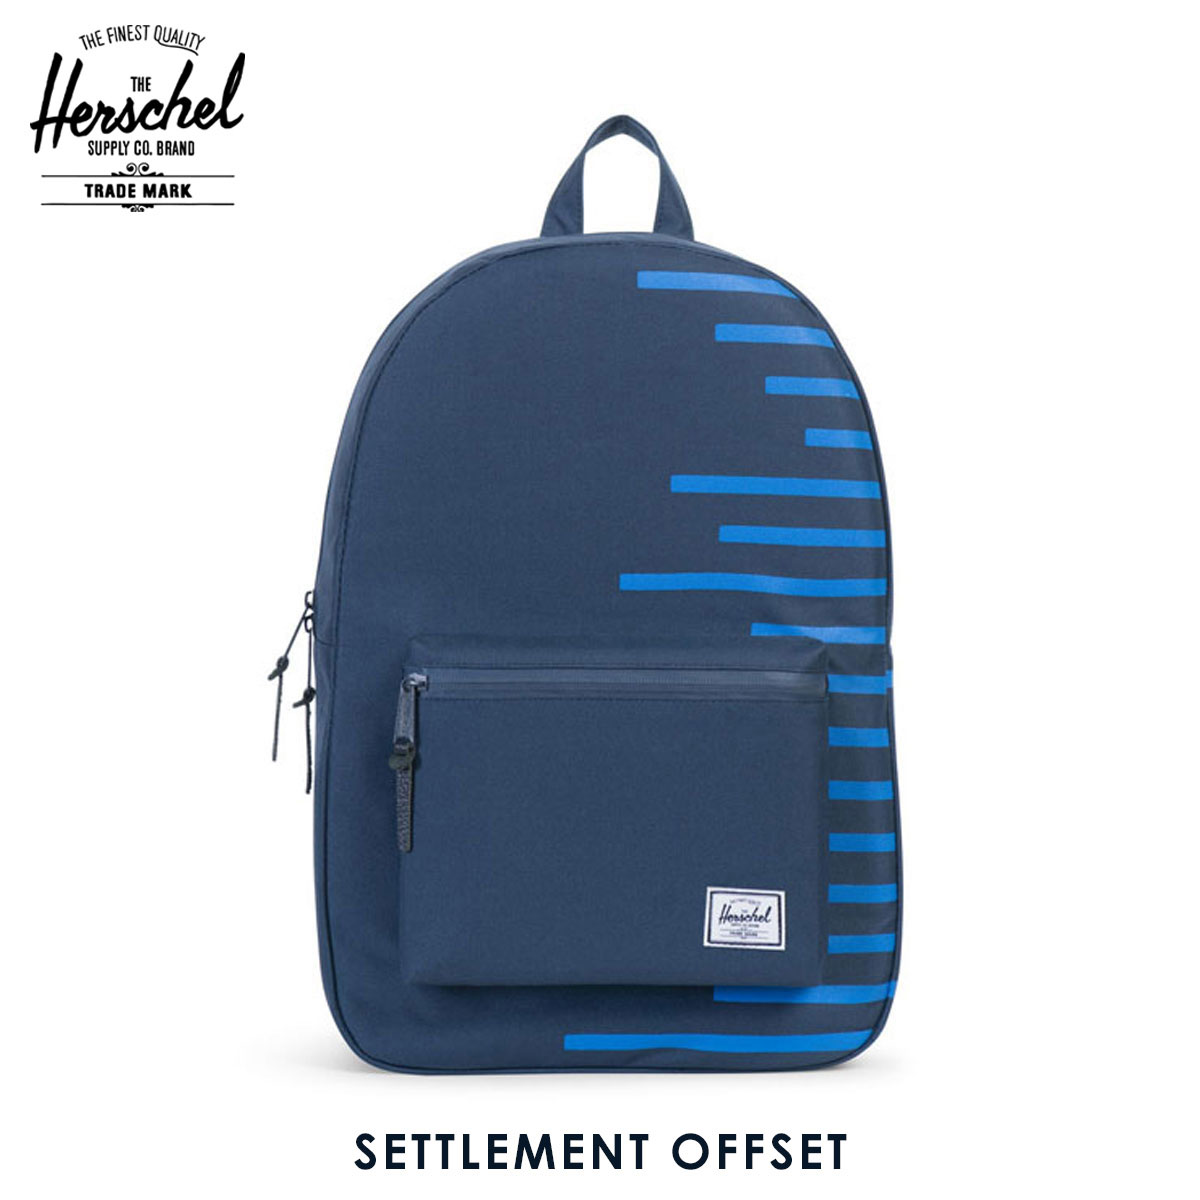 f1827f0354f Herschel Herschel Supply regular sale shop bag rucksack SETTLEMENT OFFSET  10005-01042-OS NAVY COBALT STRIPES